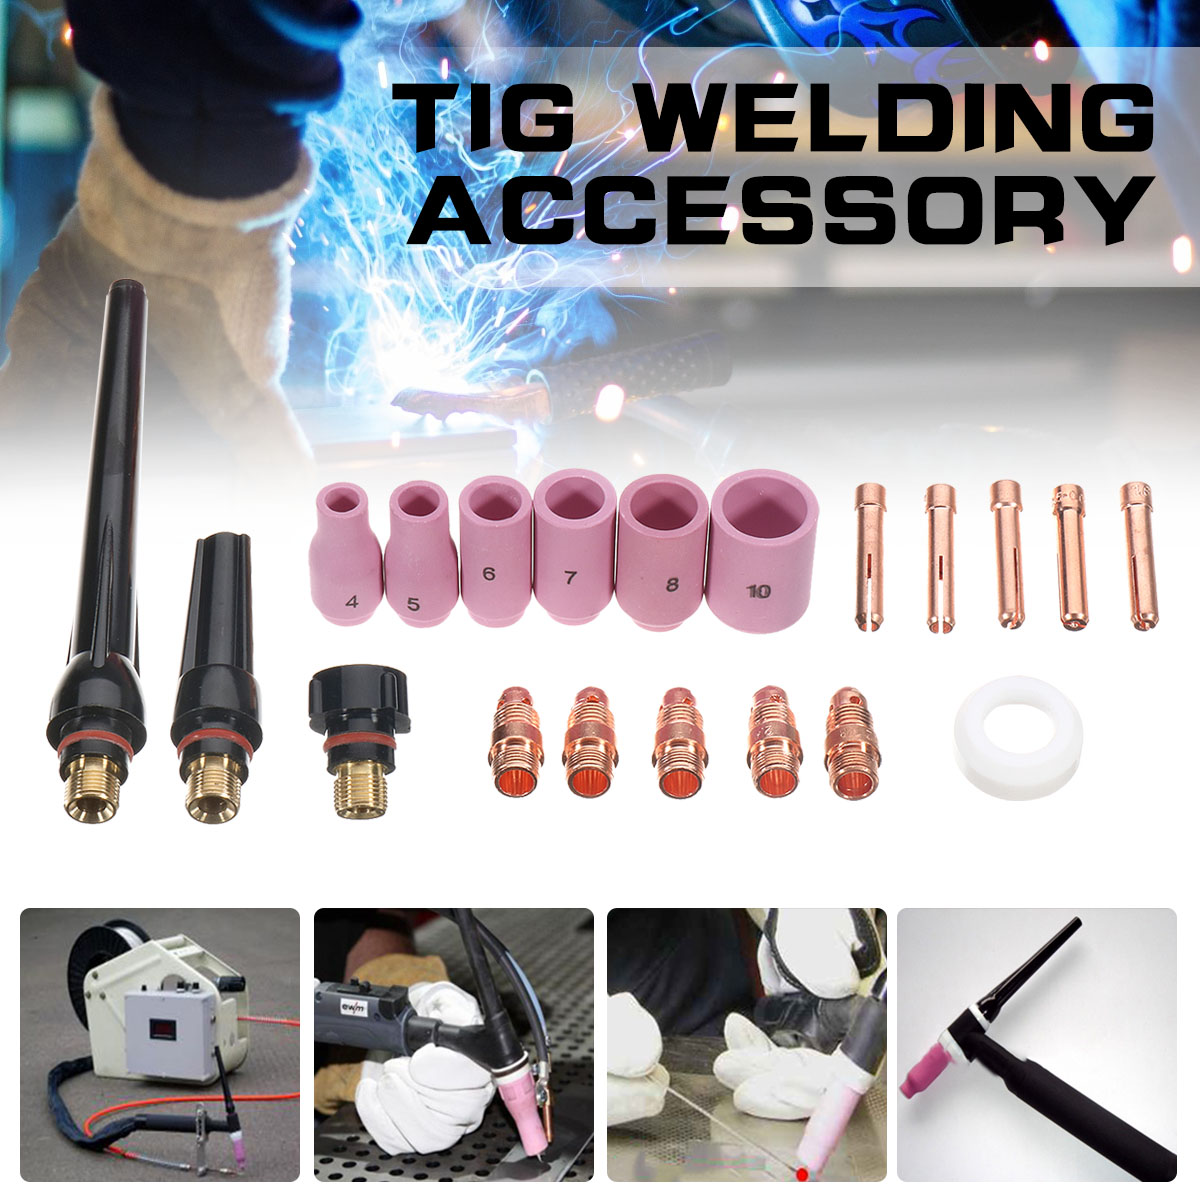 Tig Welding Torch 17 18 26 Accessory Kit Stubby Collet Setup T23 Us Seller Fast Tig Torches Business Industrial 32baar Com